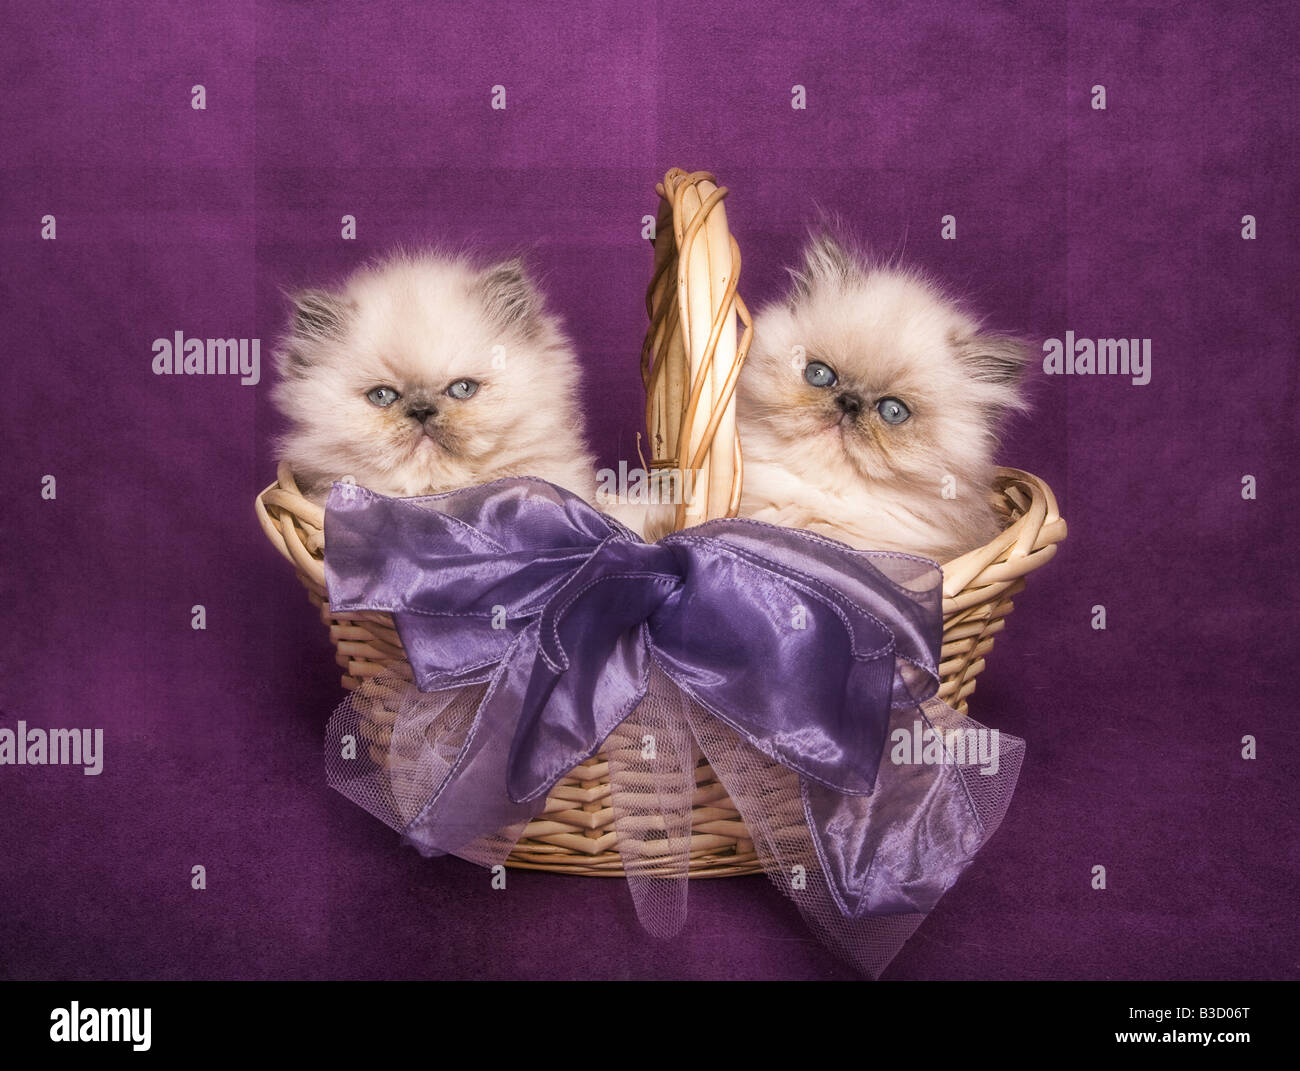 Two cute tortie point Himalayan kittens in a basket on purple background - Stock Image